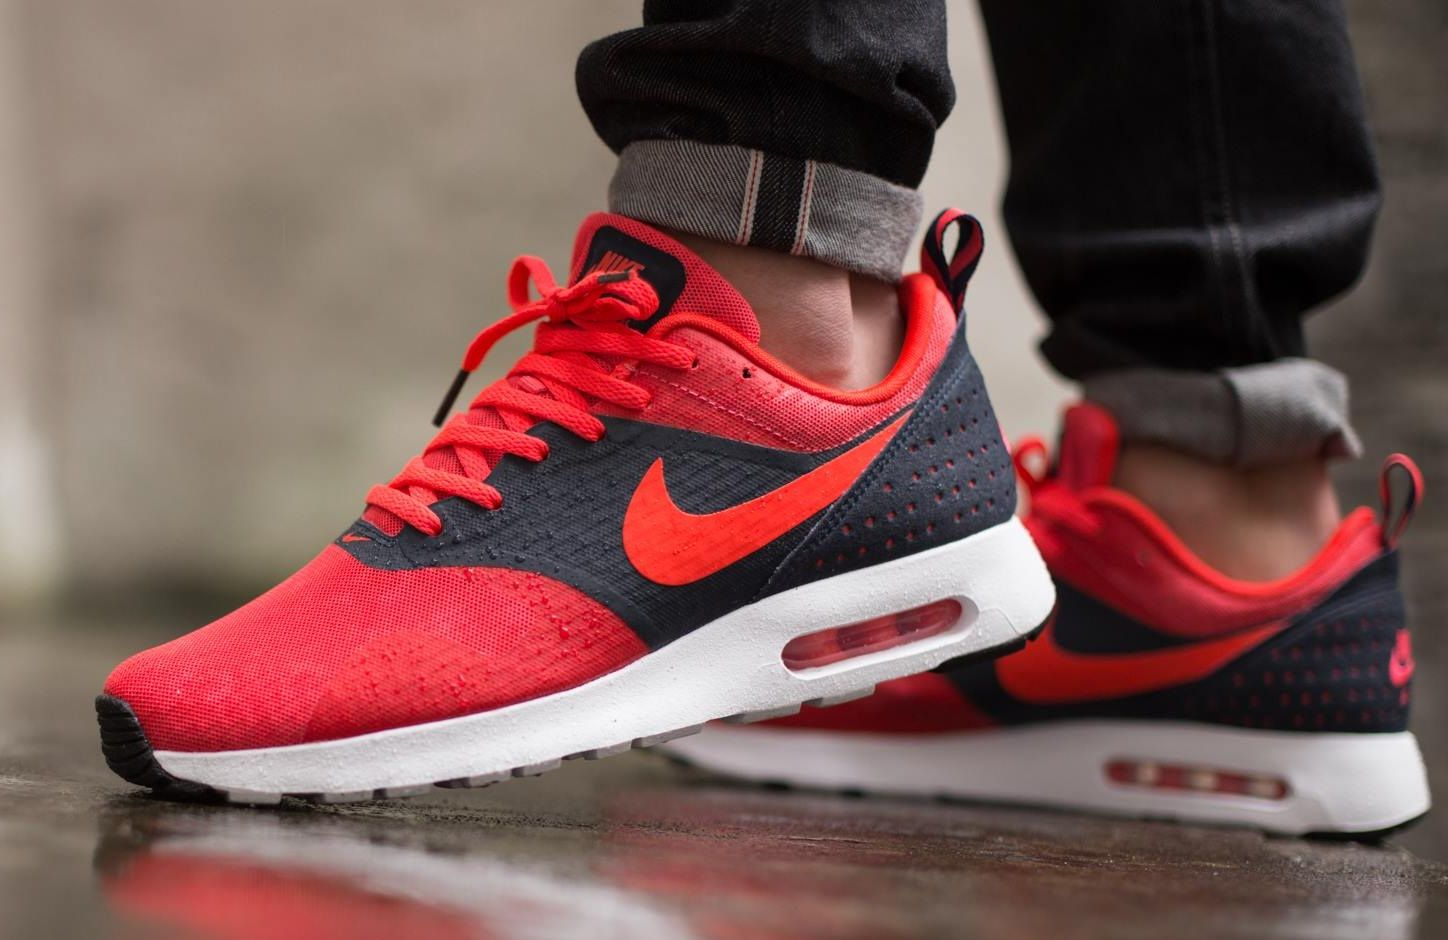 nike air max tavas prm gym red\/white jordan